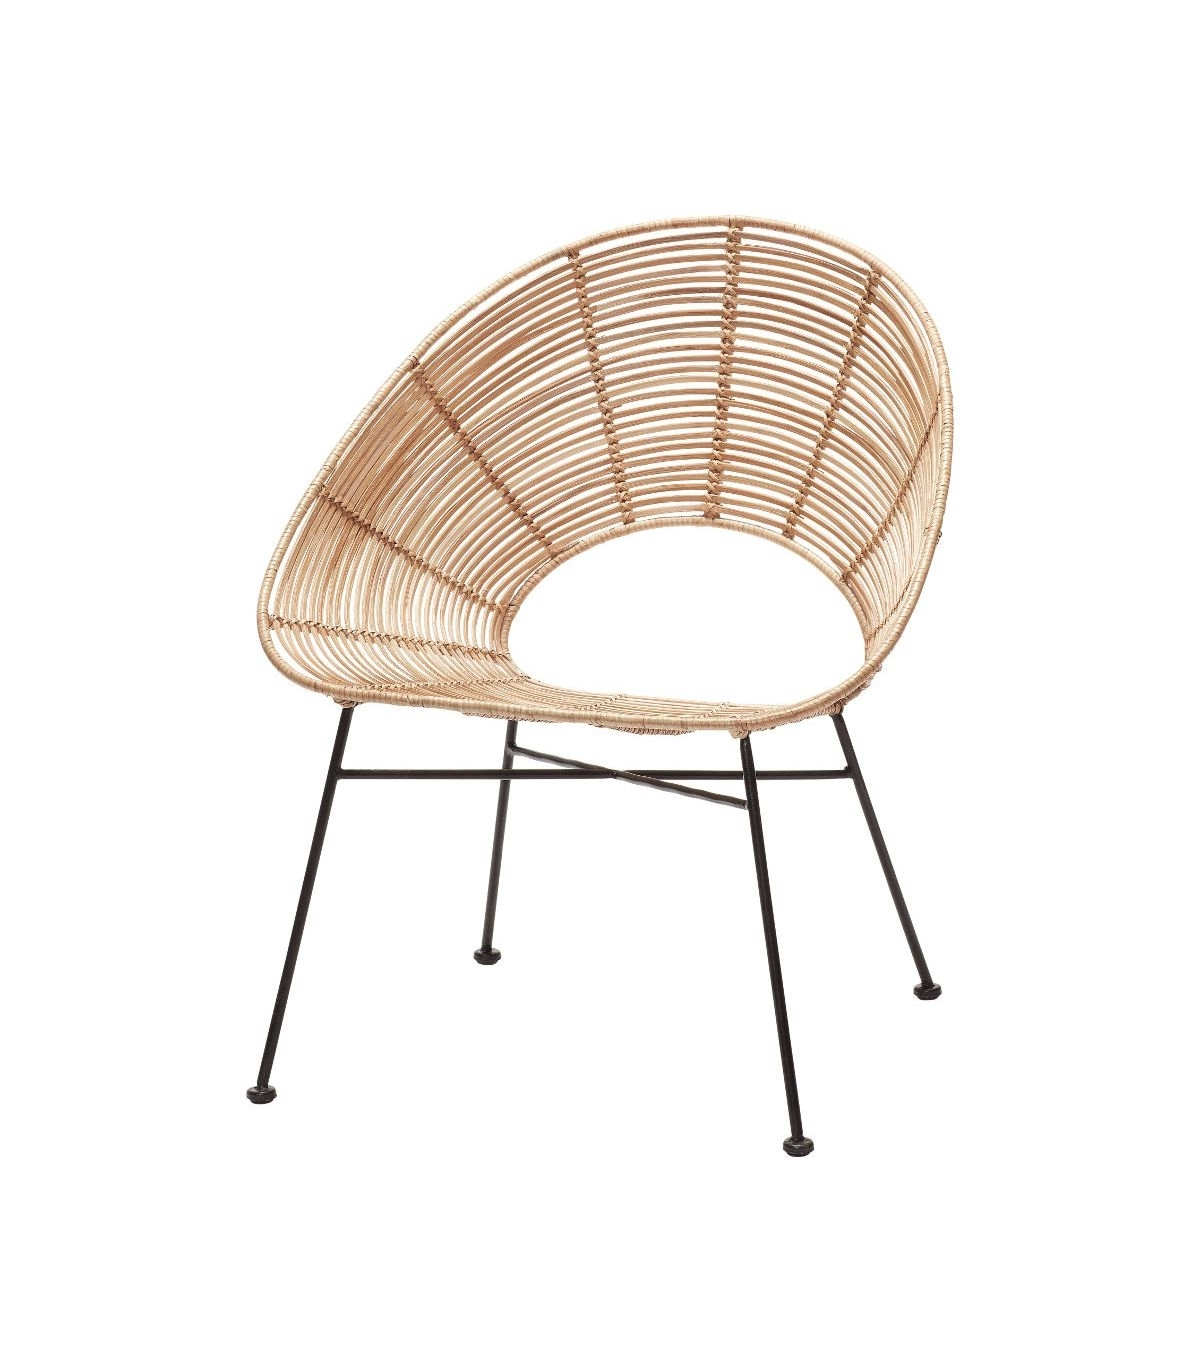 Current Natural Rattan Metal Chairs Pertaining To Round Chair Natural Rattan & Metal Hübsch (View 6 of 20)